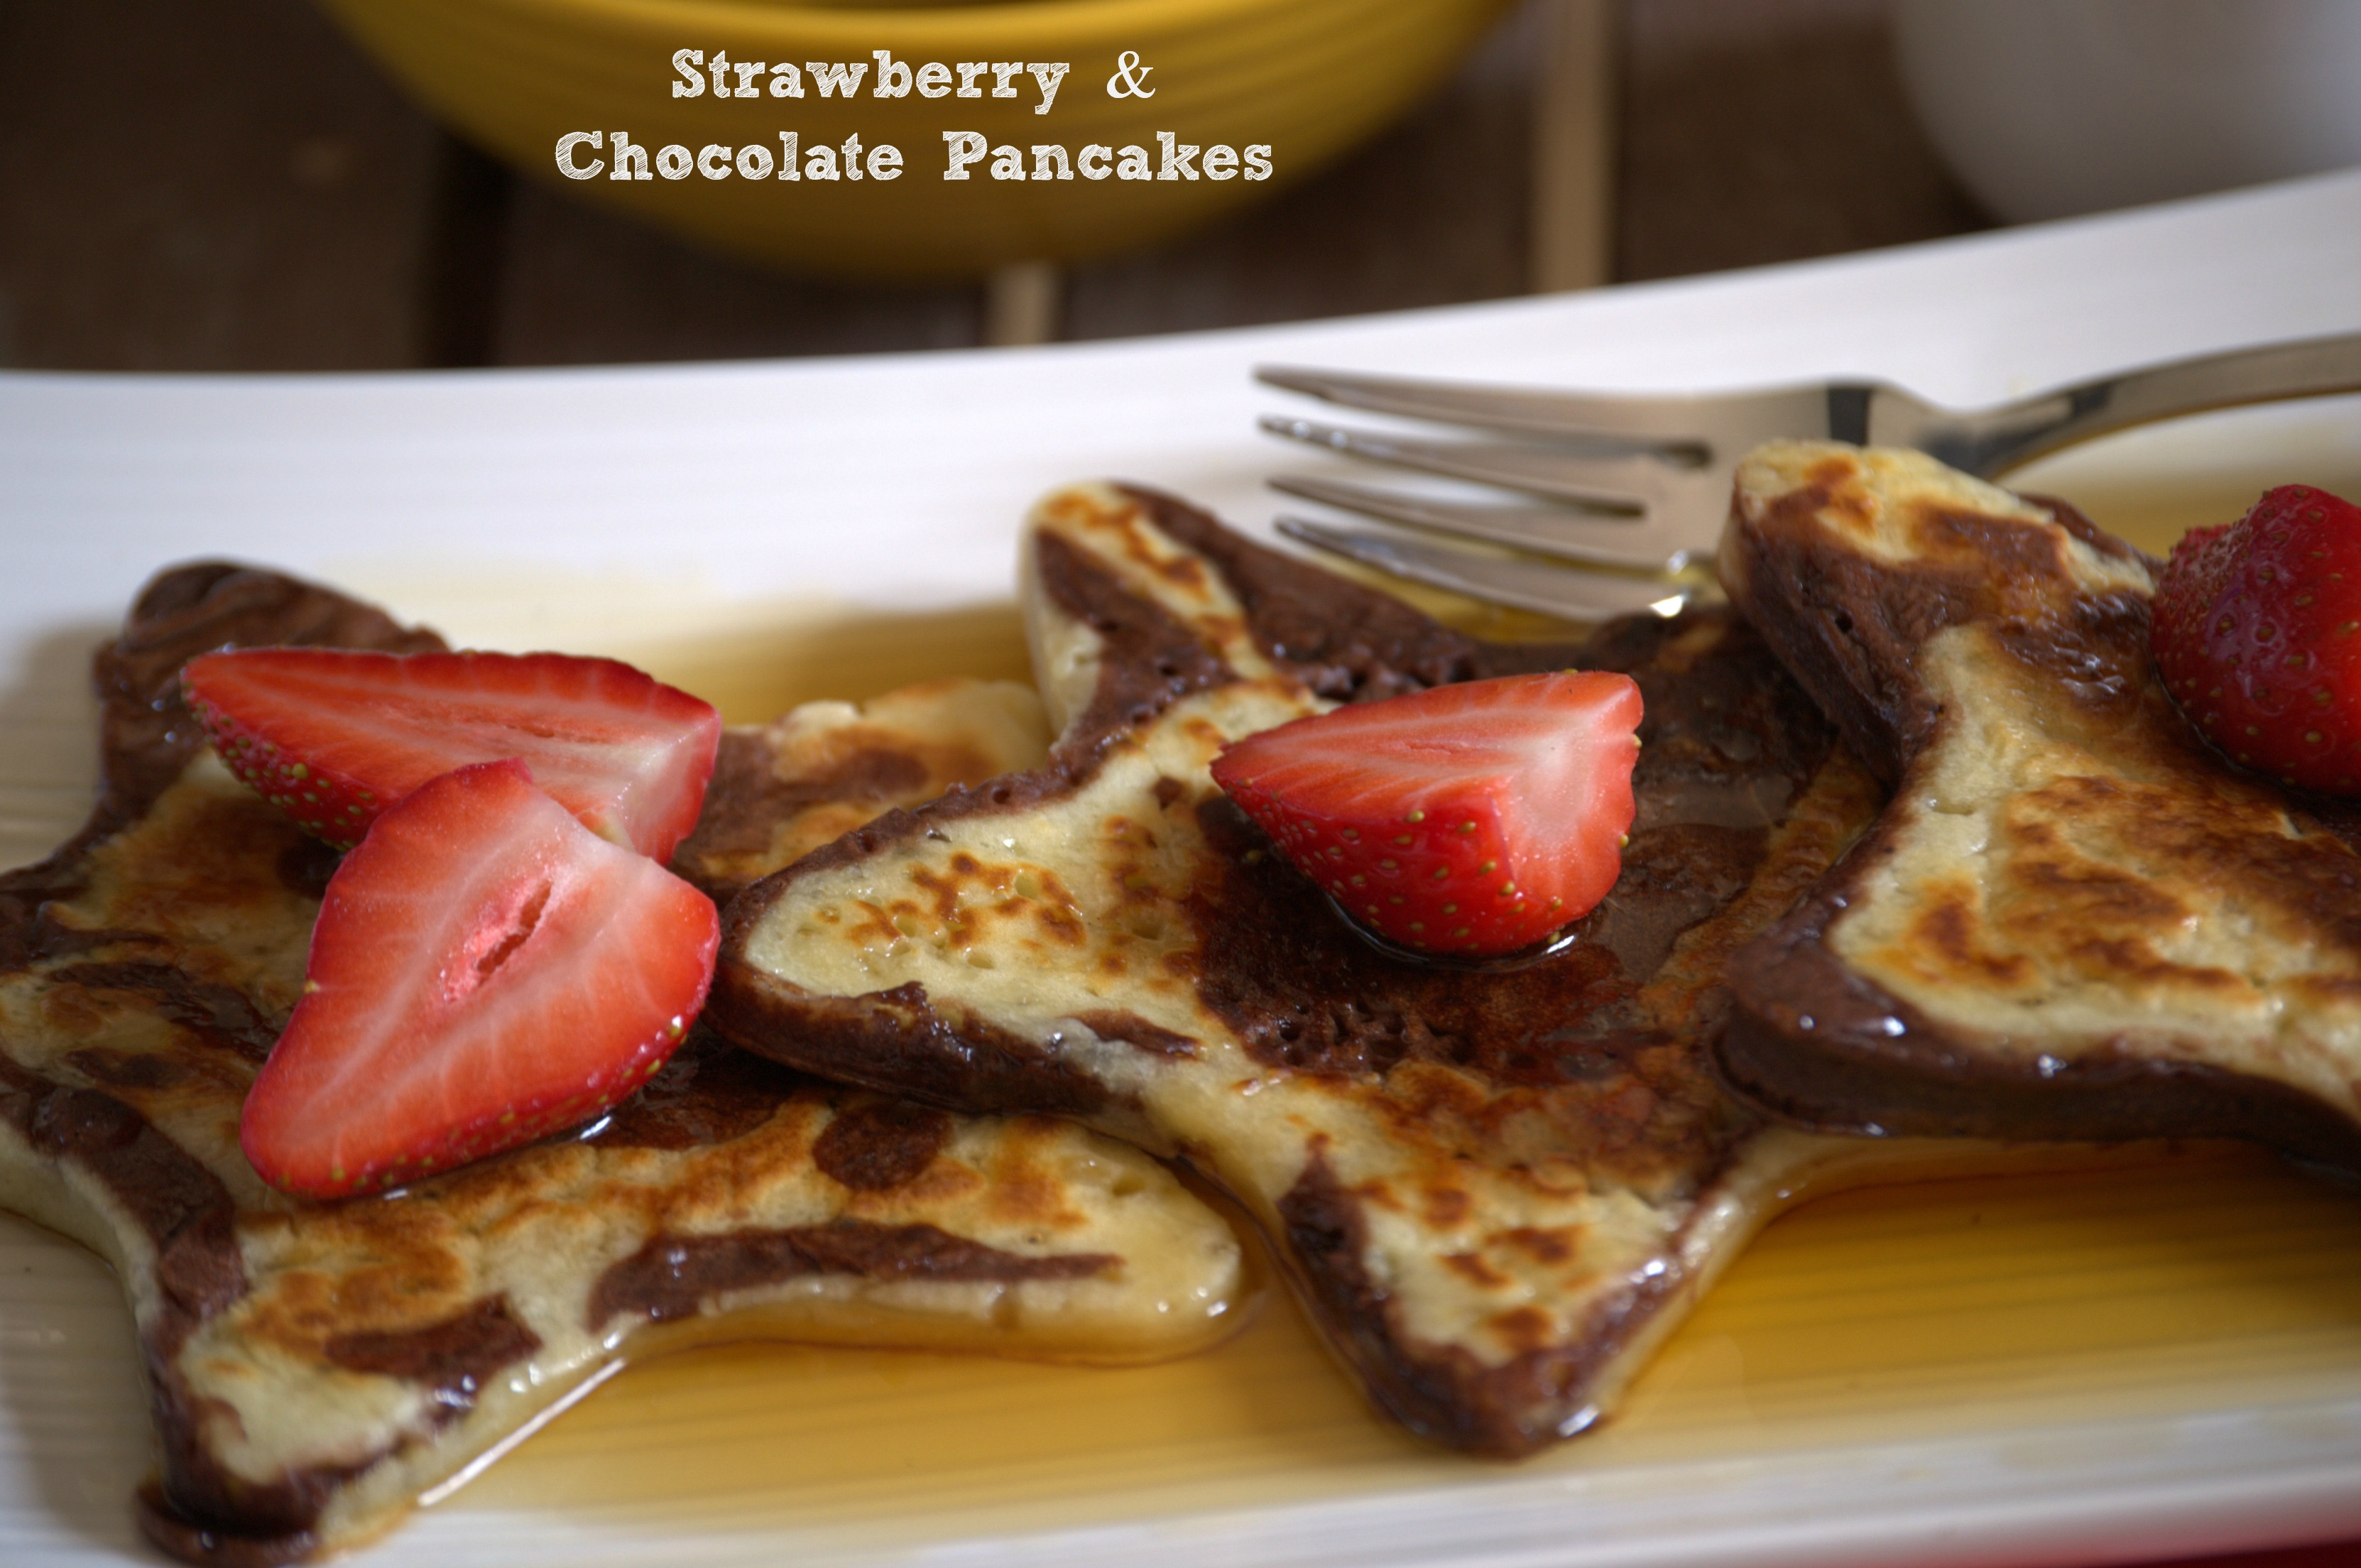 Pancakes de fresa y chocolate - Strawberry and chocolate